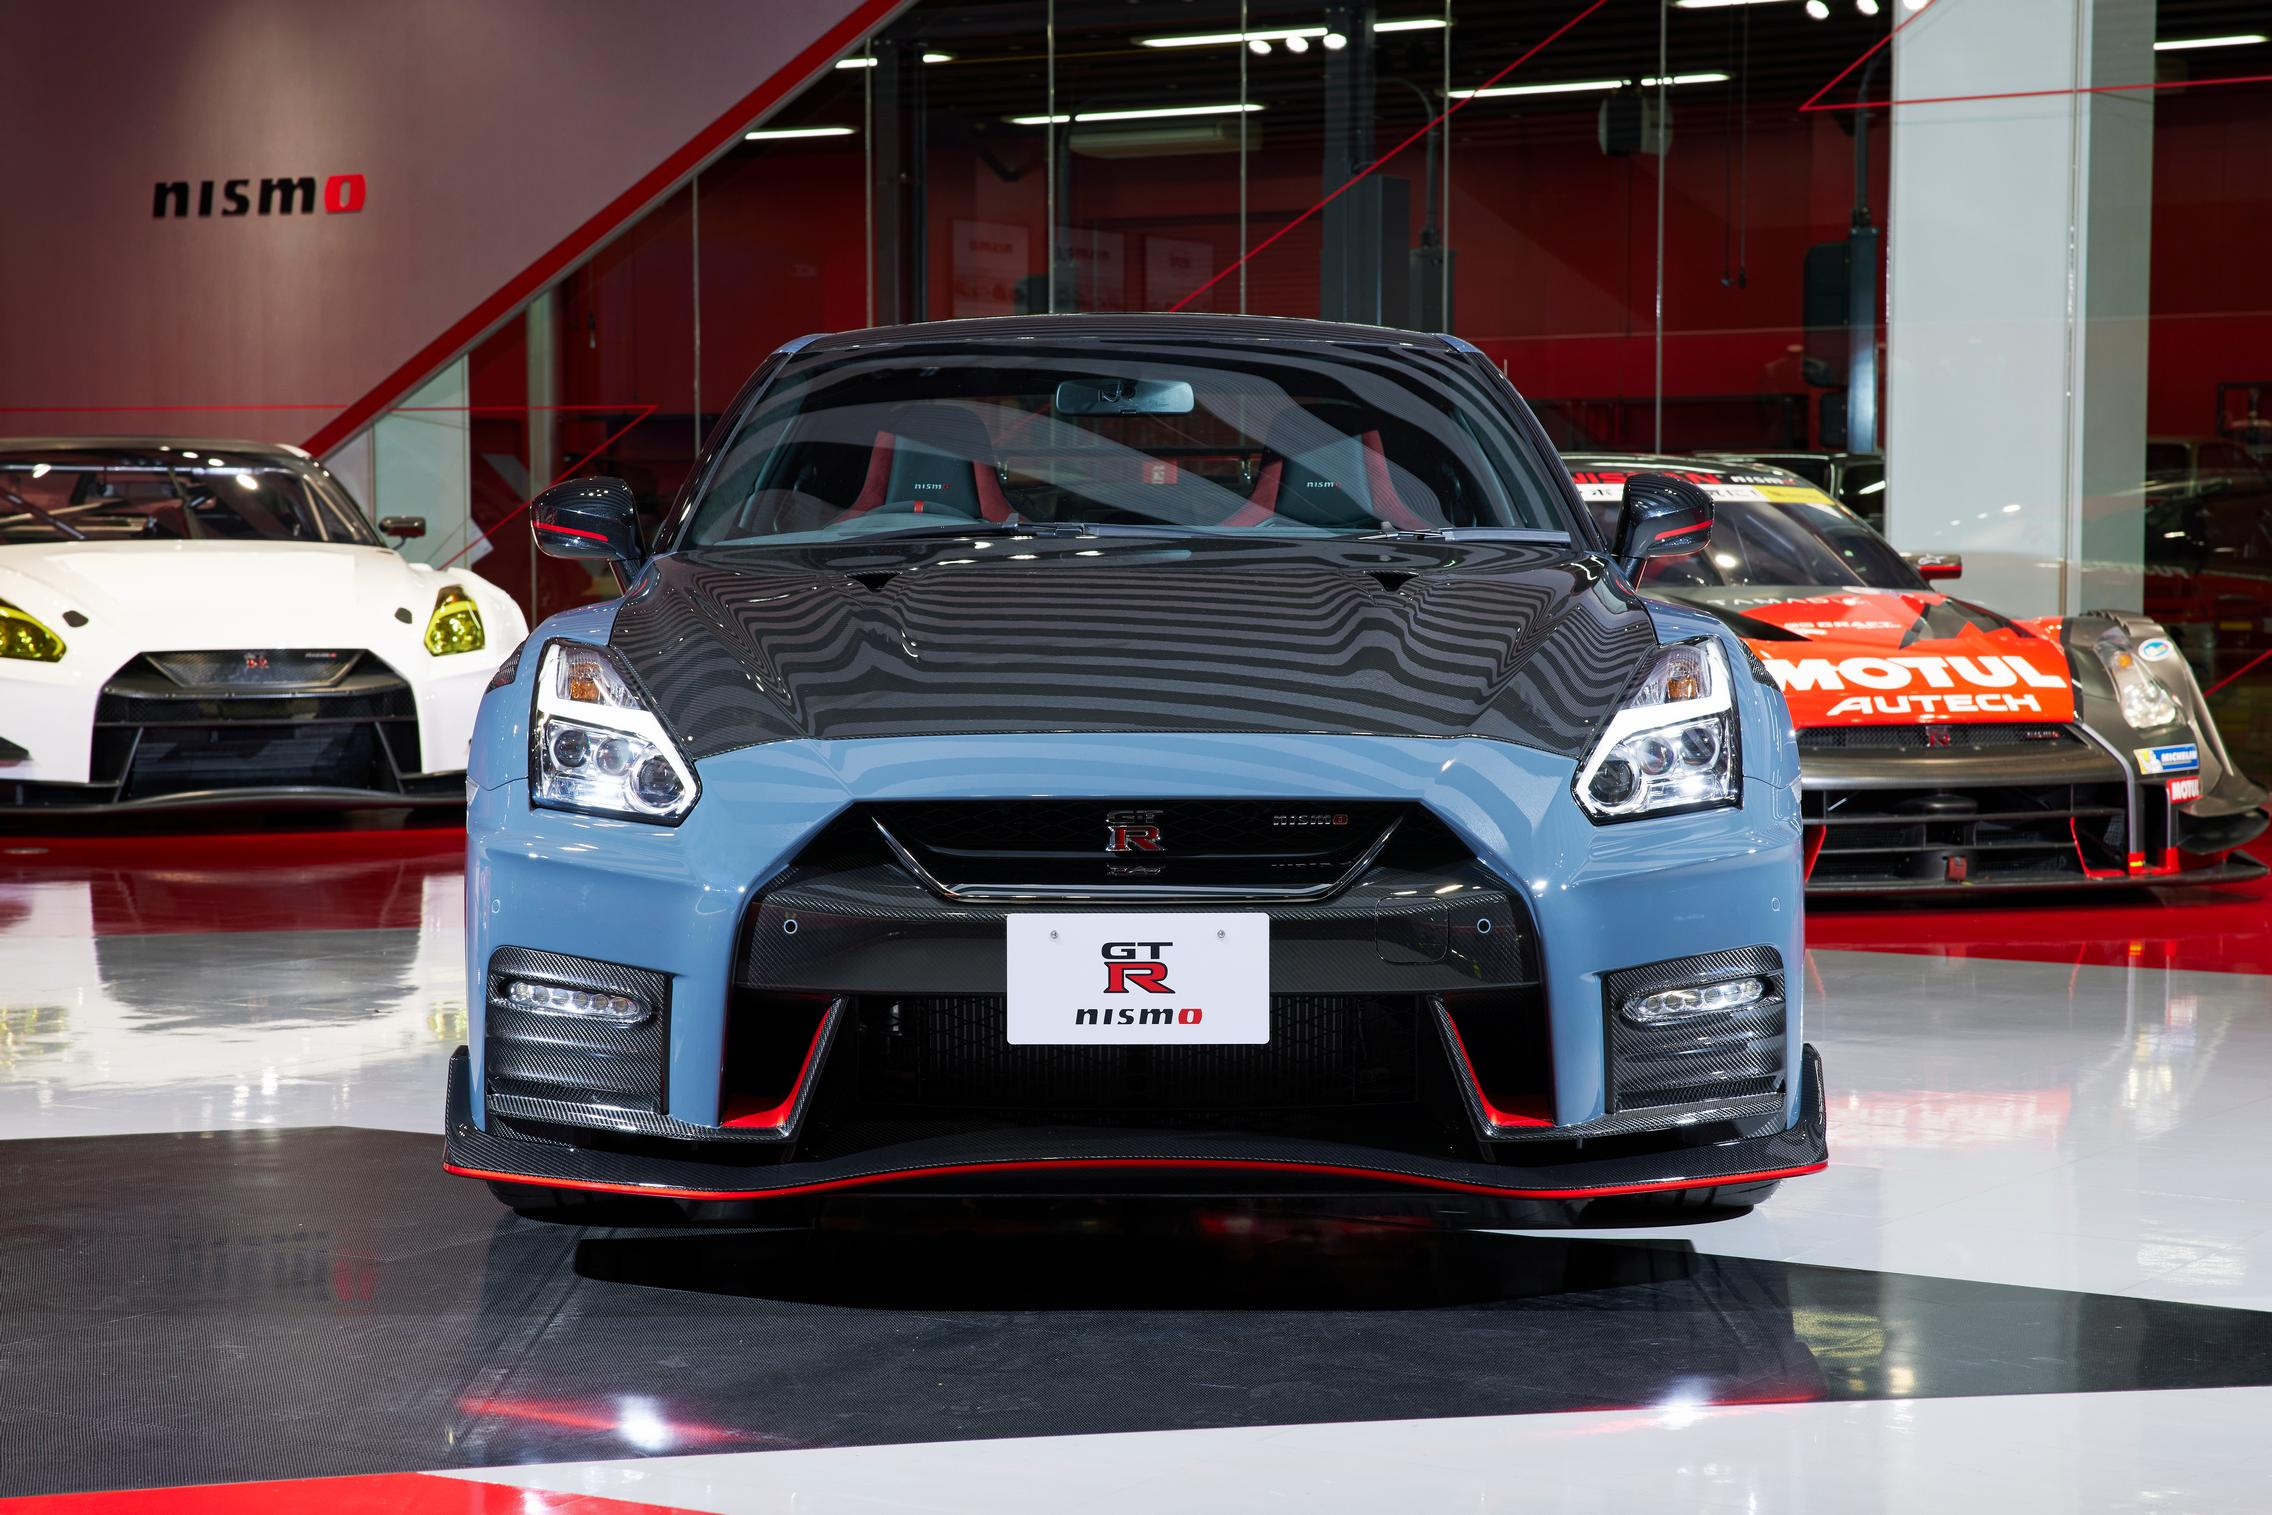 2022 Nissan GT-R Nismo front